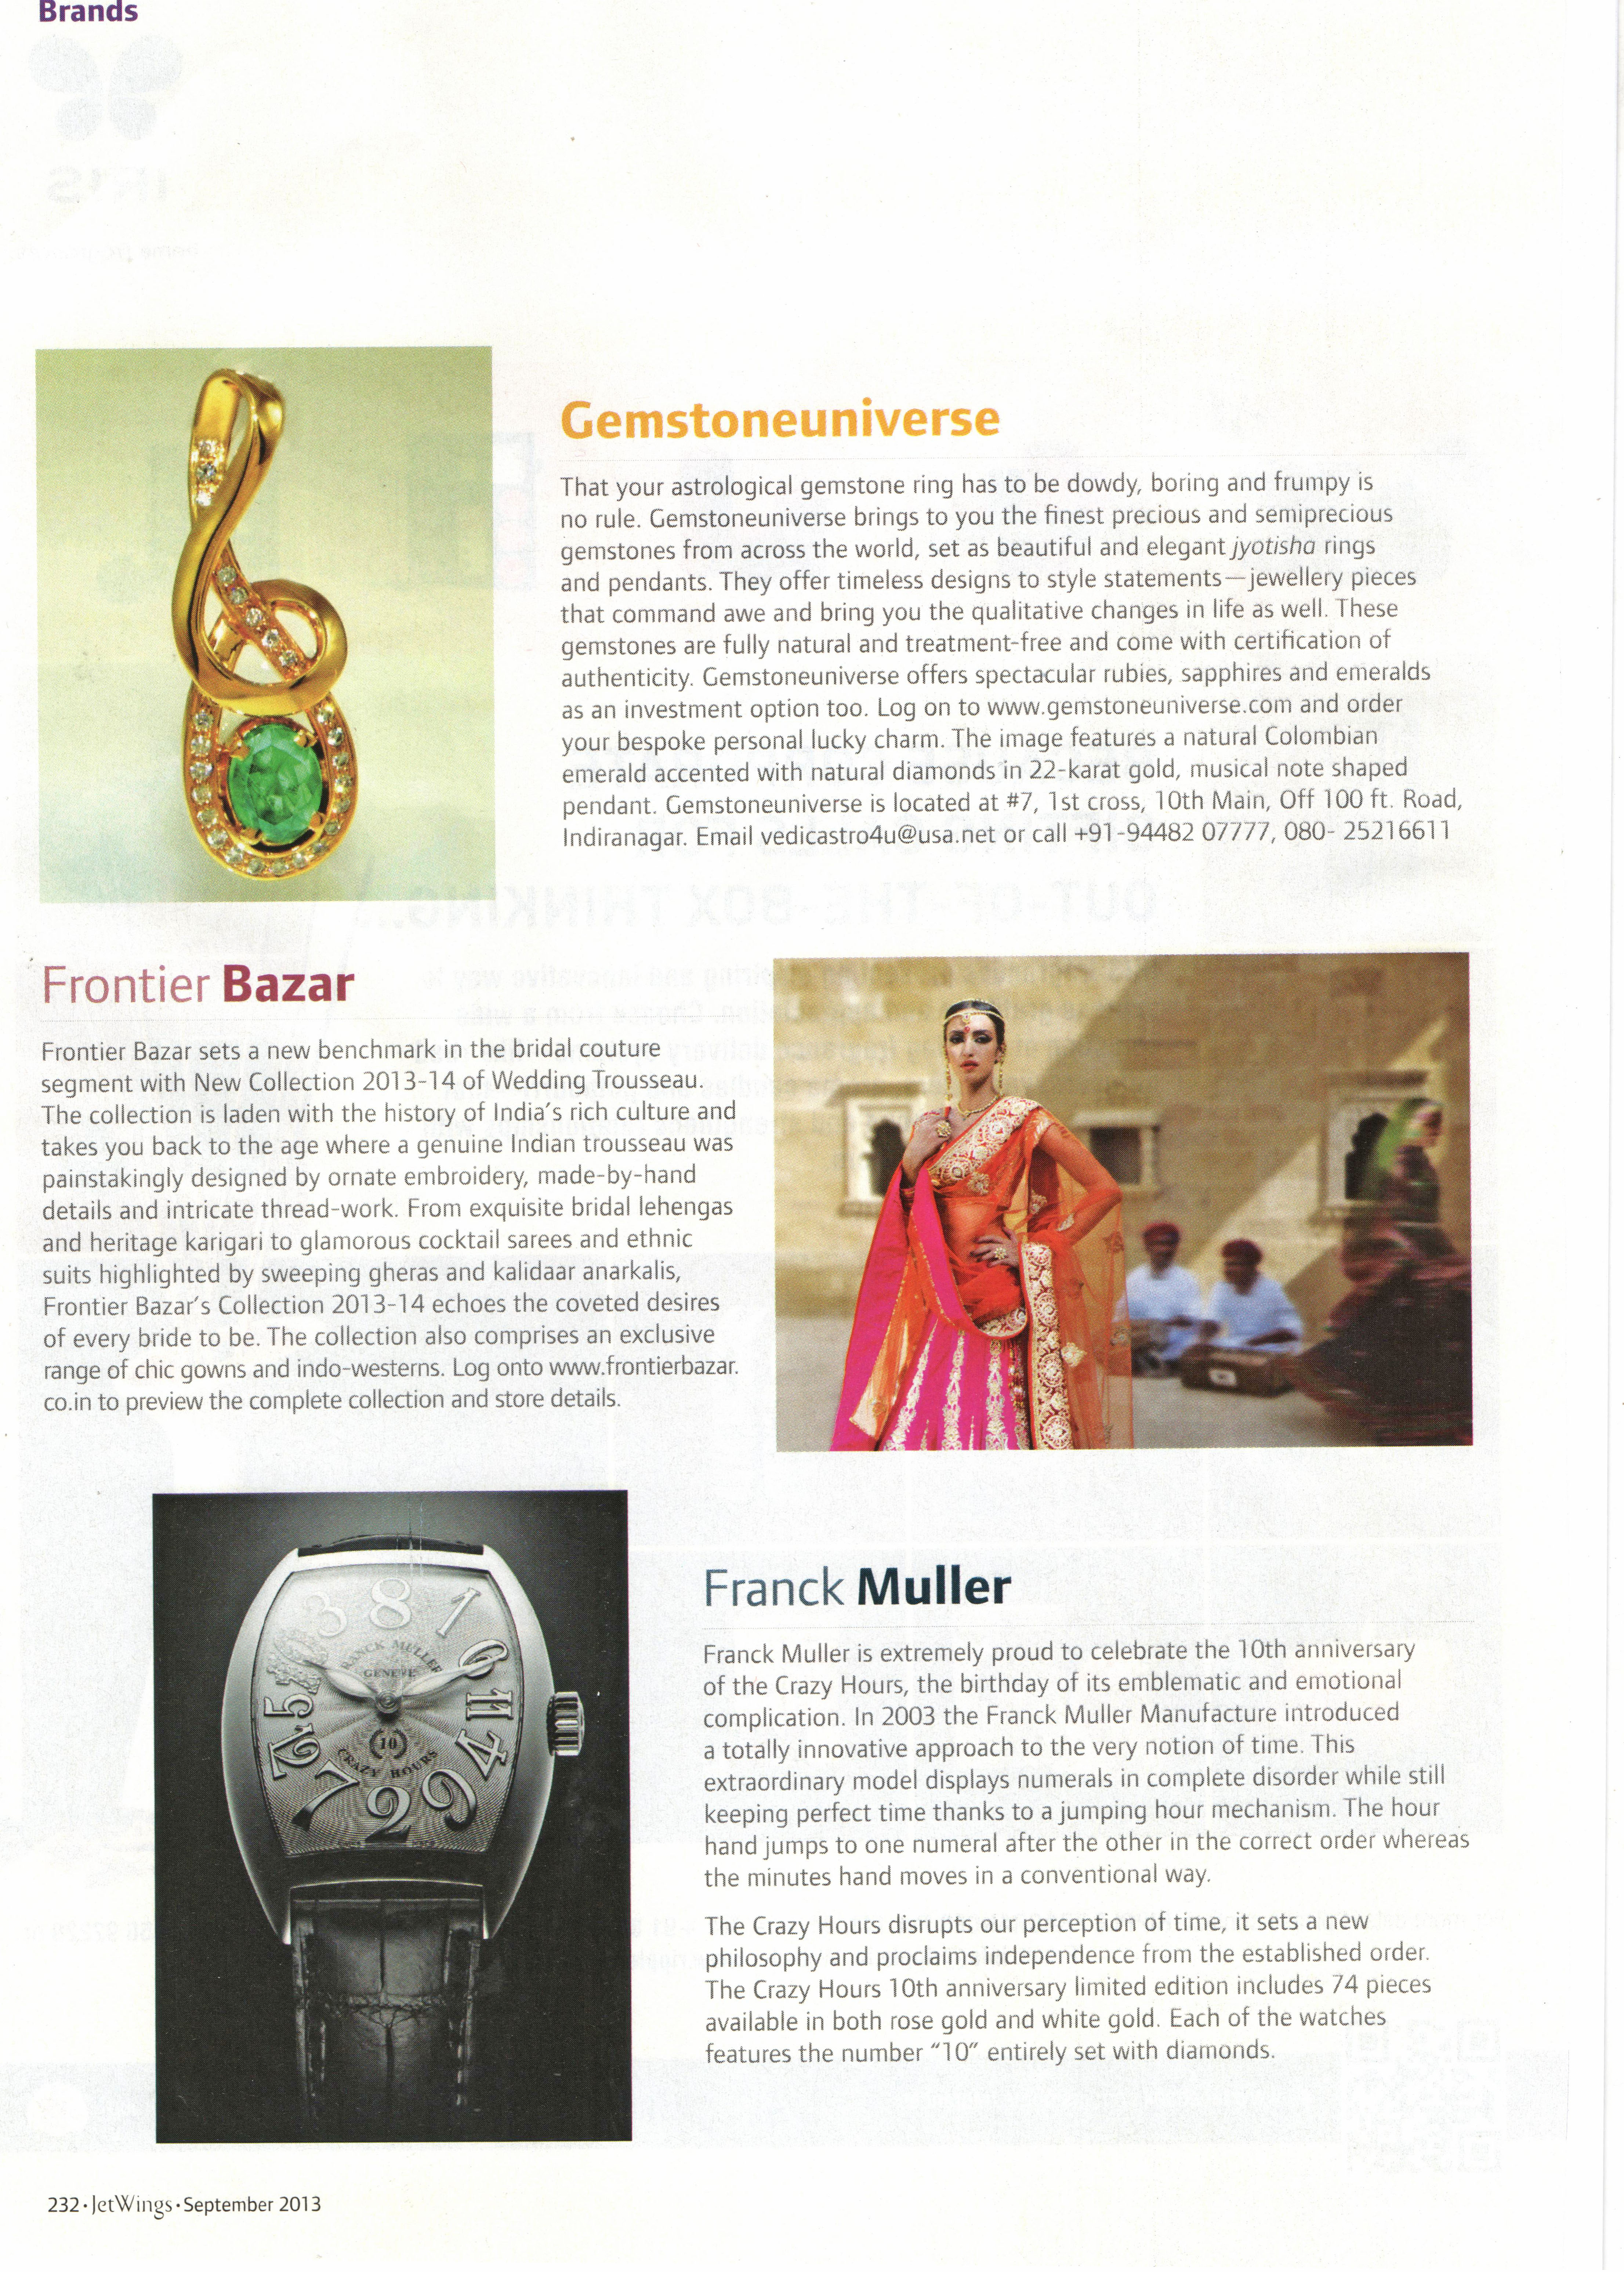 Premium Planetary Gemstone Brand featured in Jetwings Domestic September  2013